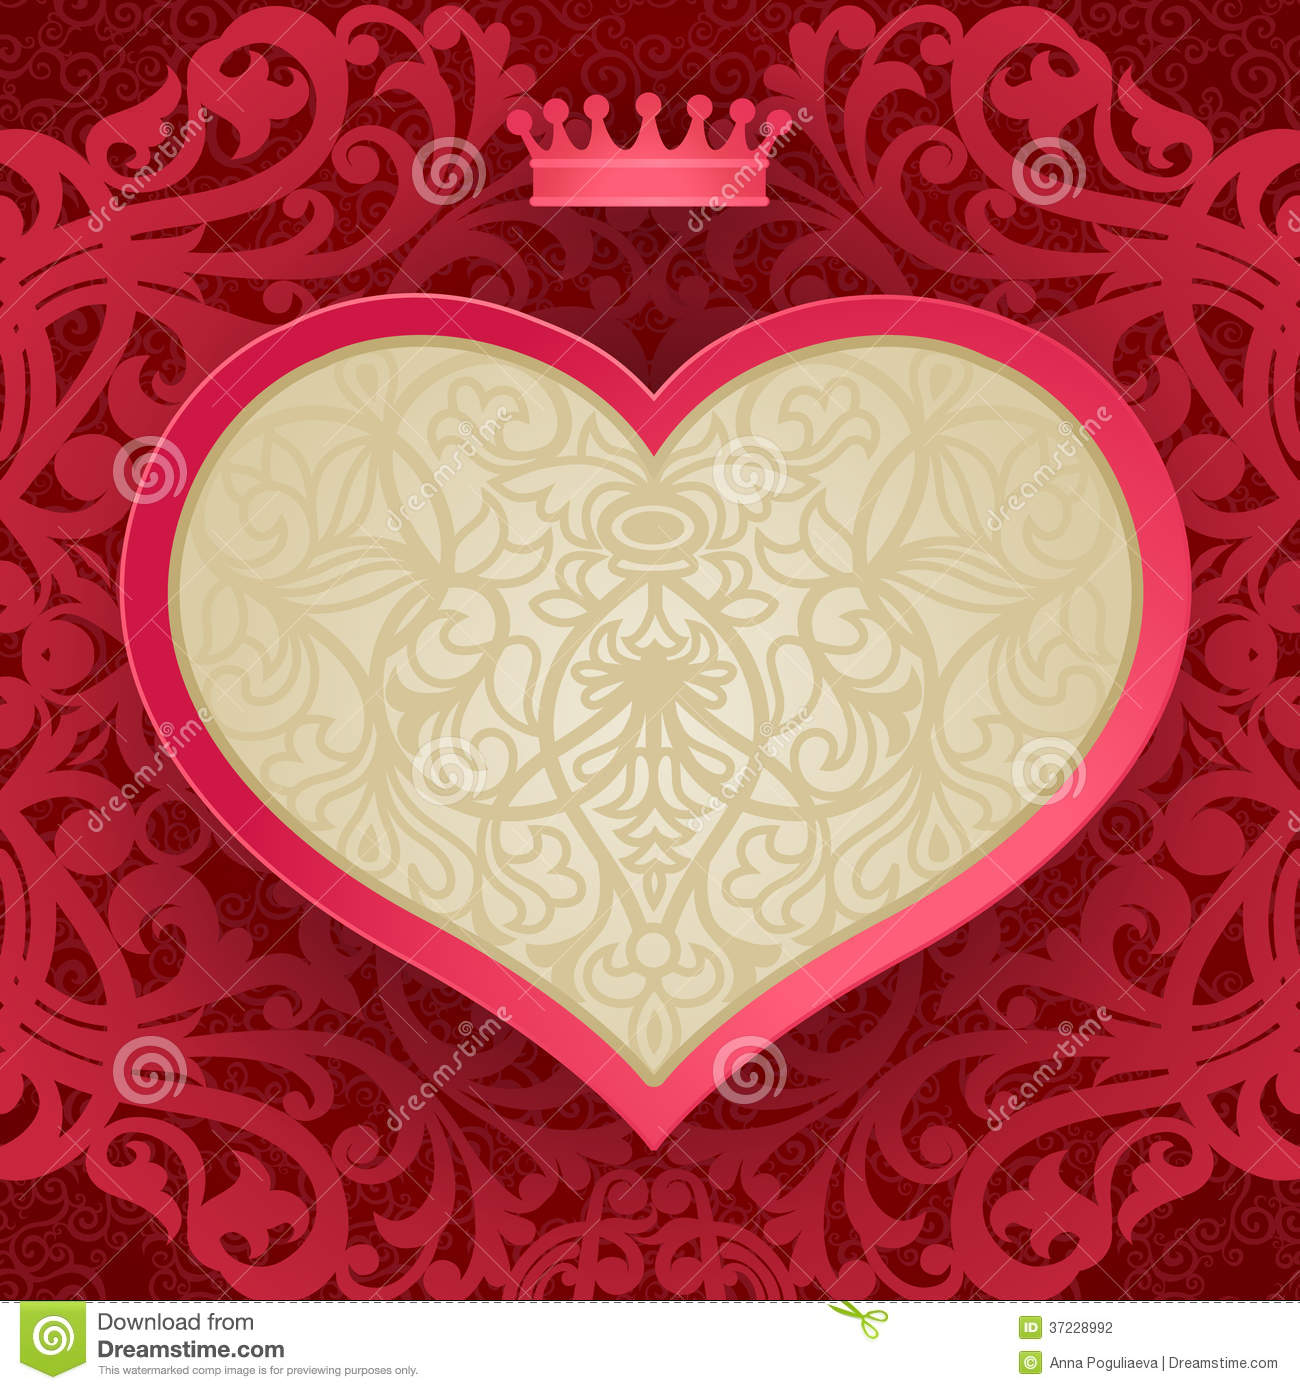 Vintage Invitation Card With Heart And Floral Motifs. Stock Vector ...